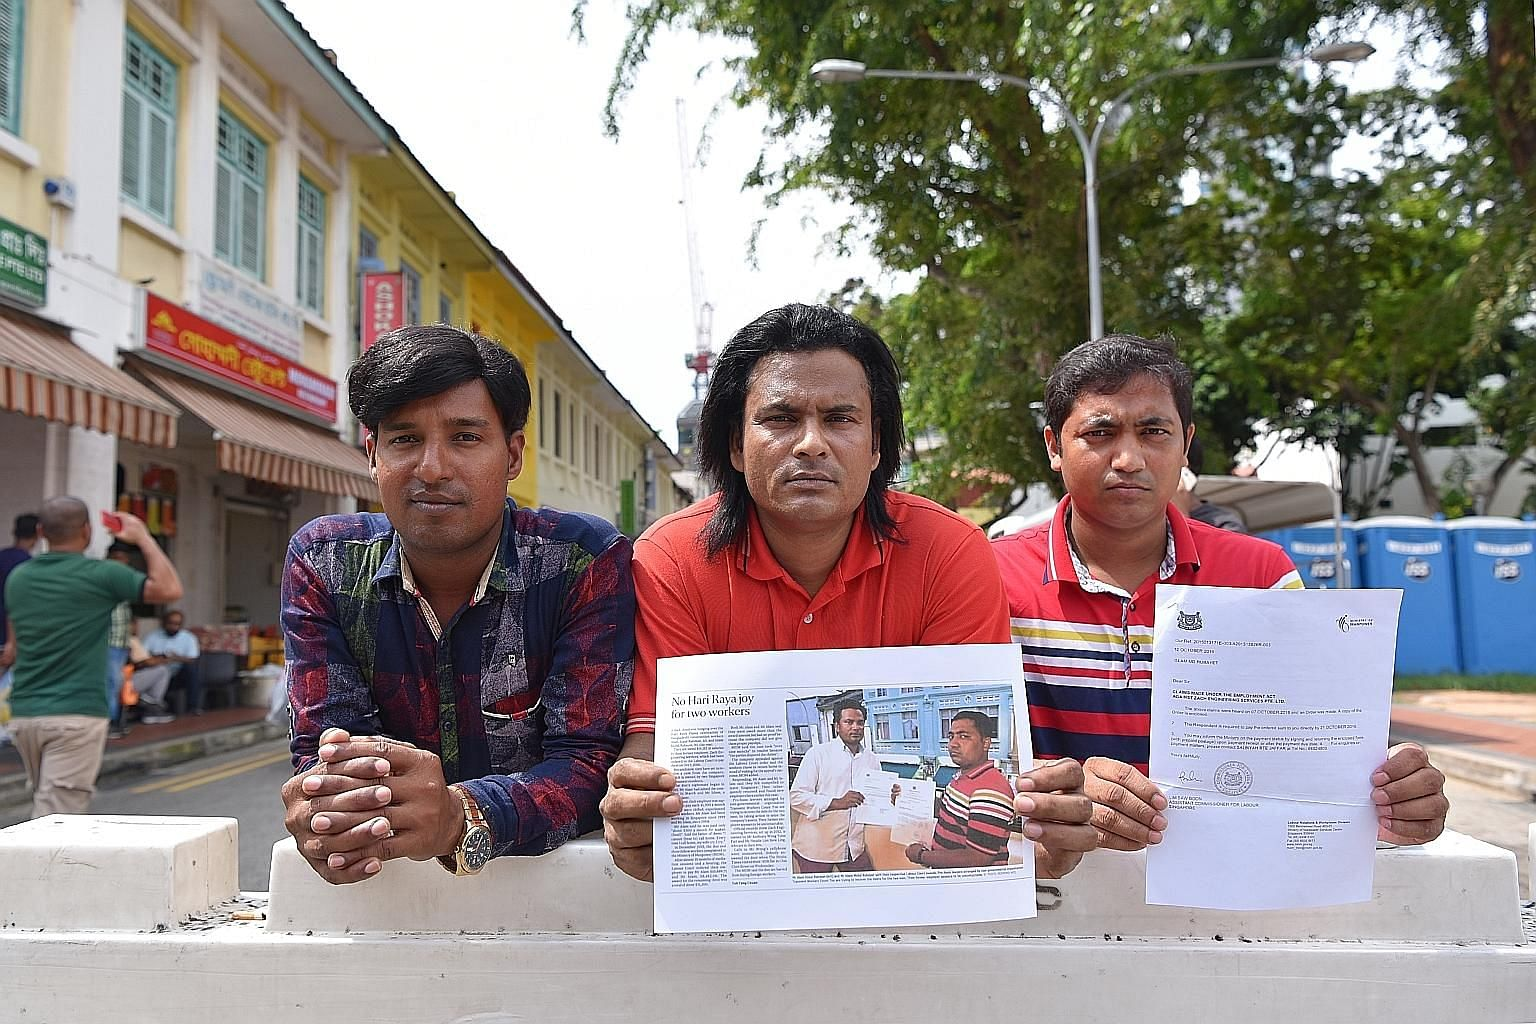 Bangladeshi workers (from left) Rabiul Islam Abdur Rahaman Mia, Alam Ataur Rahman and Islam Mohd Rubayet with copies of the ST story in 2016 on their plight and the Labour Court Order.